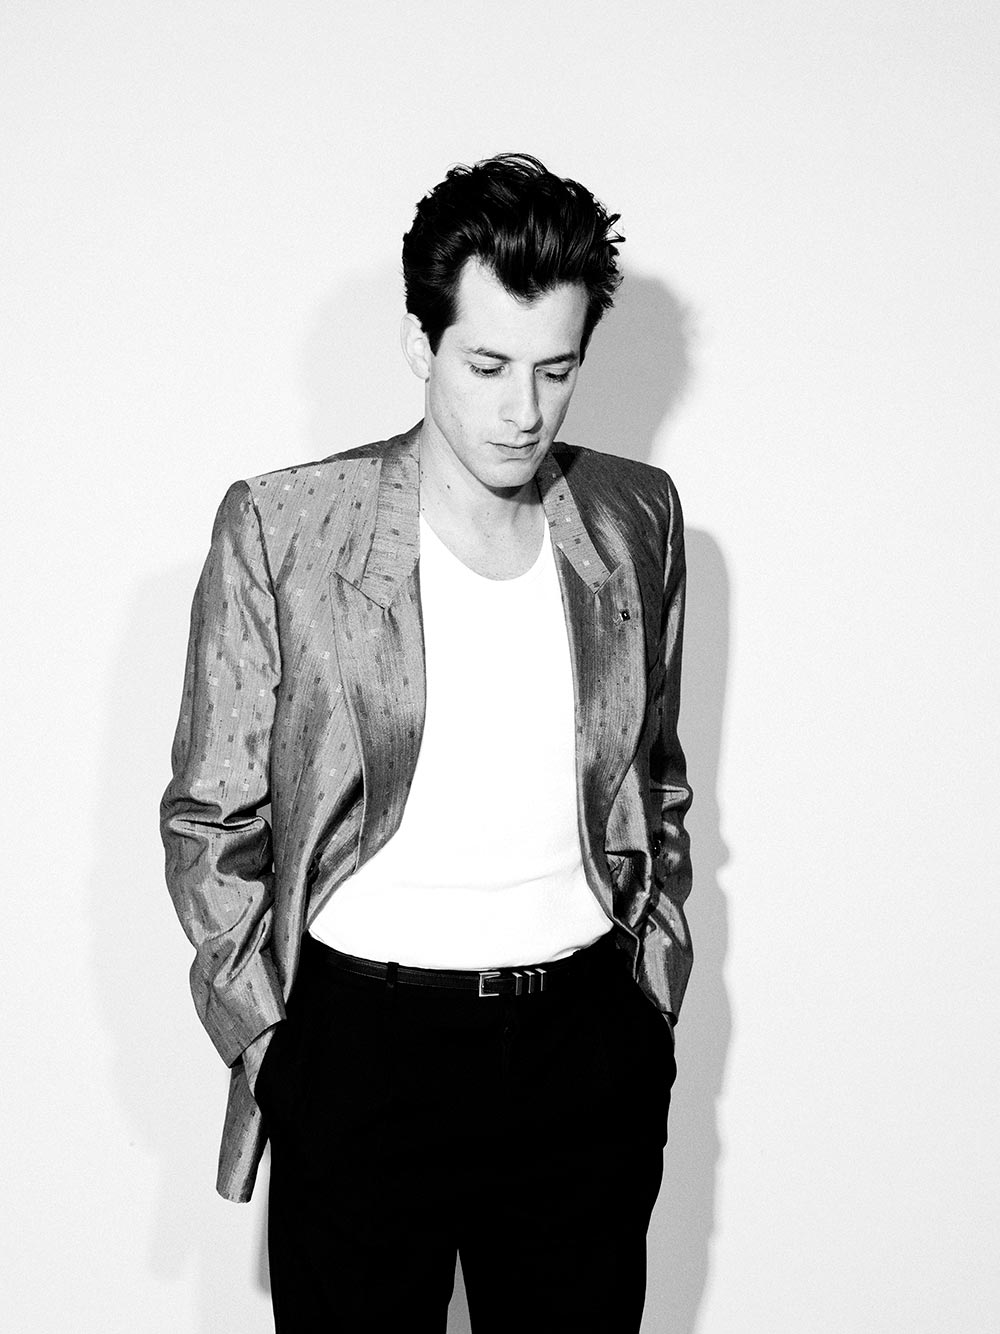 mark ronson & the business intlmark ronson uptown funk, mark ronson uptown funk скачать, mark ronson - uptown funk ft. bruno mars lyrics, mark ronson uptown funk текст, mark ronson uptown funk скачать клип, mark ronson feel right, mark ronson песни, mark ronson somebody to love me, mark ronson ooh wee скачать, mark ronson stop me, mark ronson uptown funk минус, mark ronson слушать, mark ronson & the business intl, mark ronson википедия, mark ronson uptown funk рингтон, mark ronson все песни